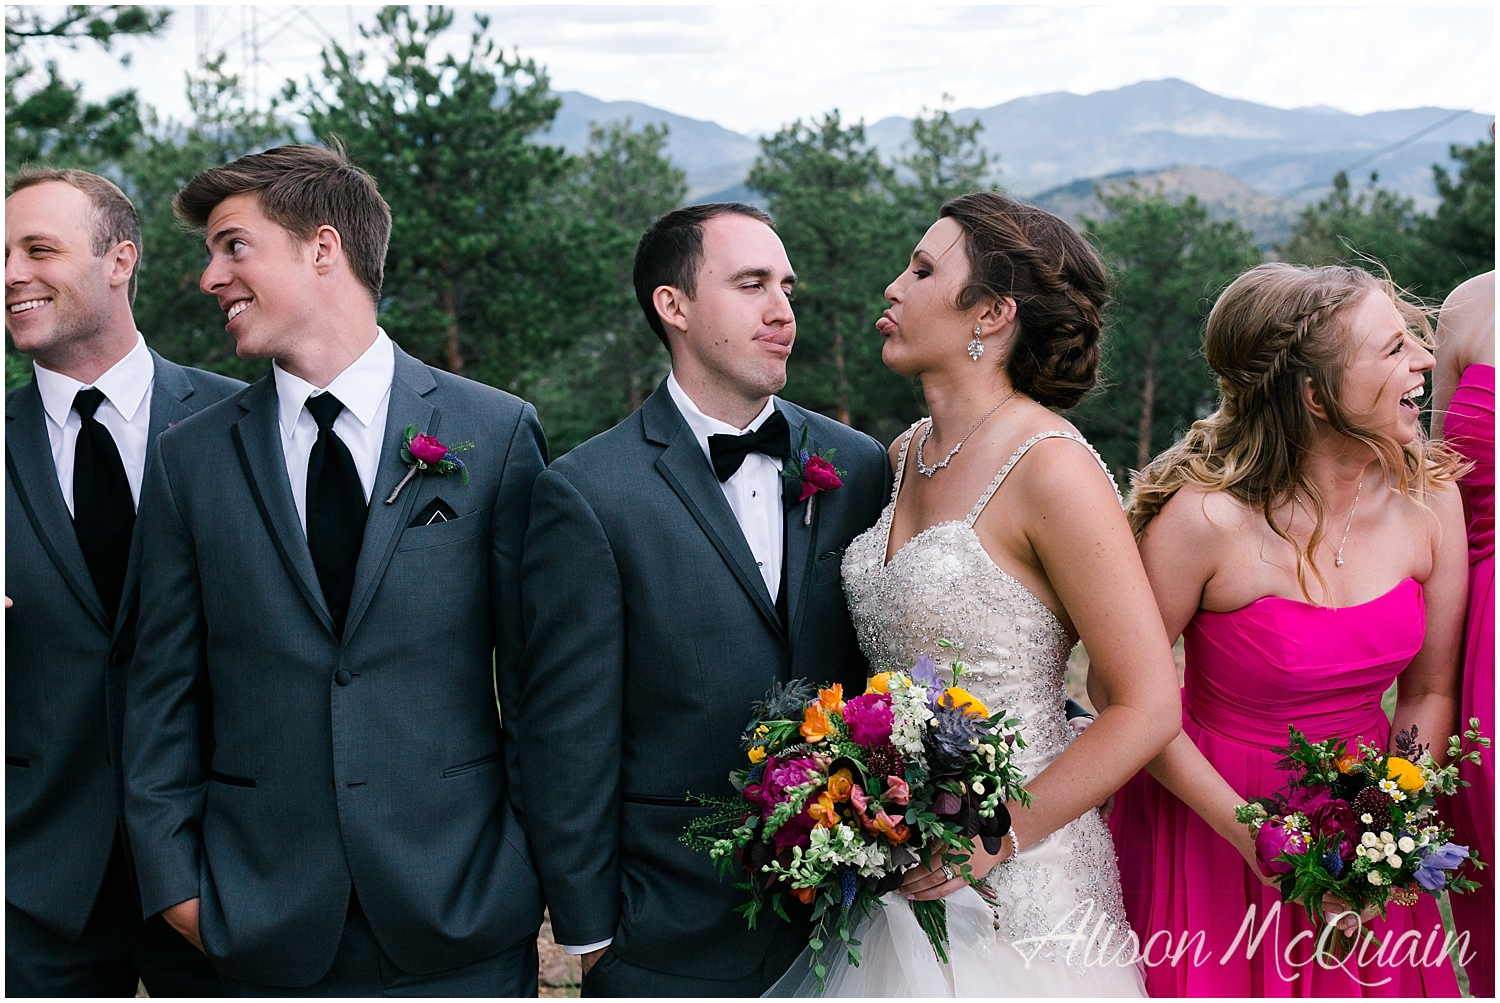 AandJ_Wedding_BoettcherMansion_Golden_Colorado_6_2018_AMP_0041.jpg